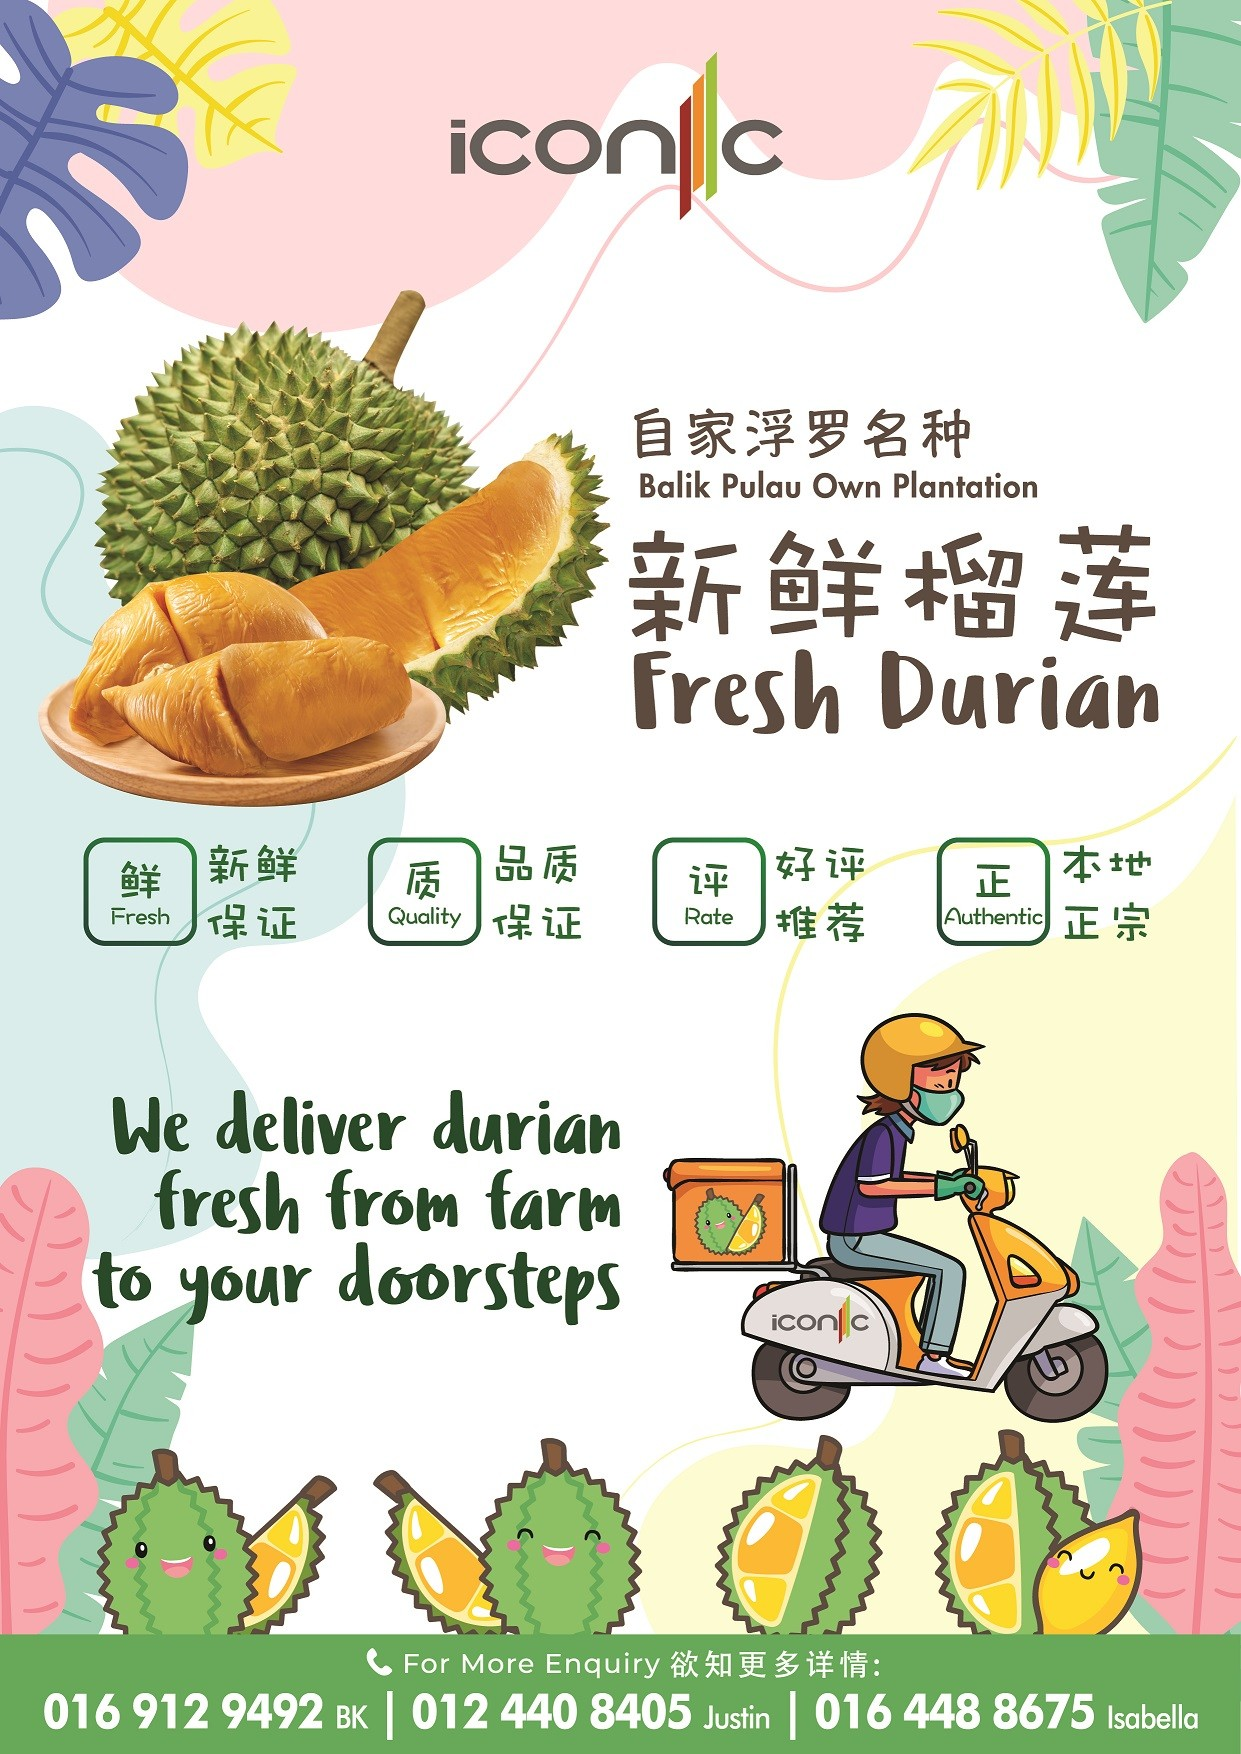 Fresh Durian by Iconic Hotel Penang